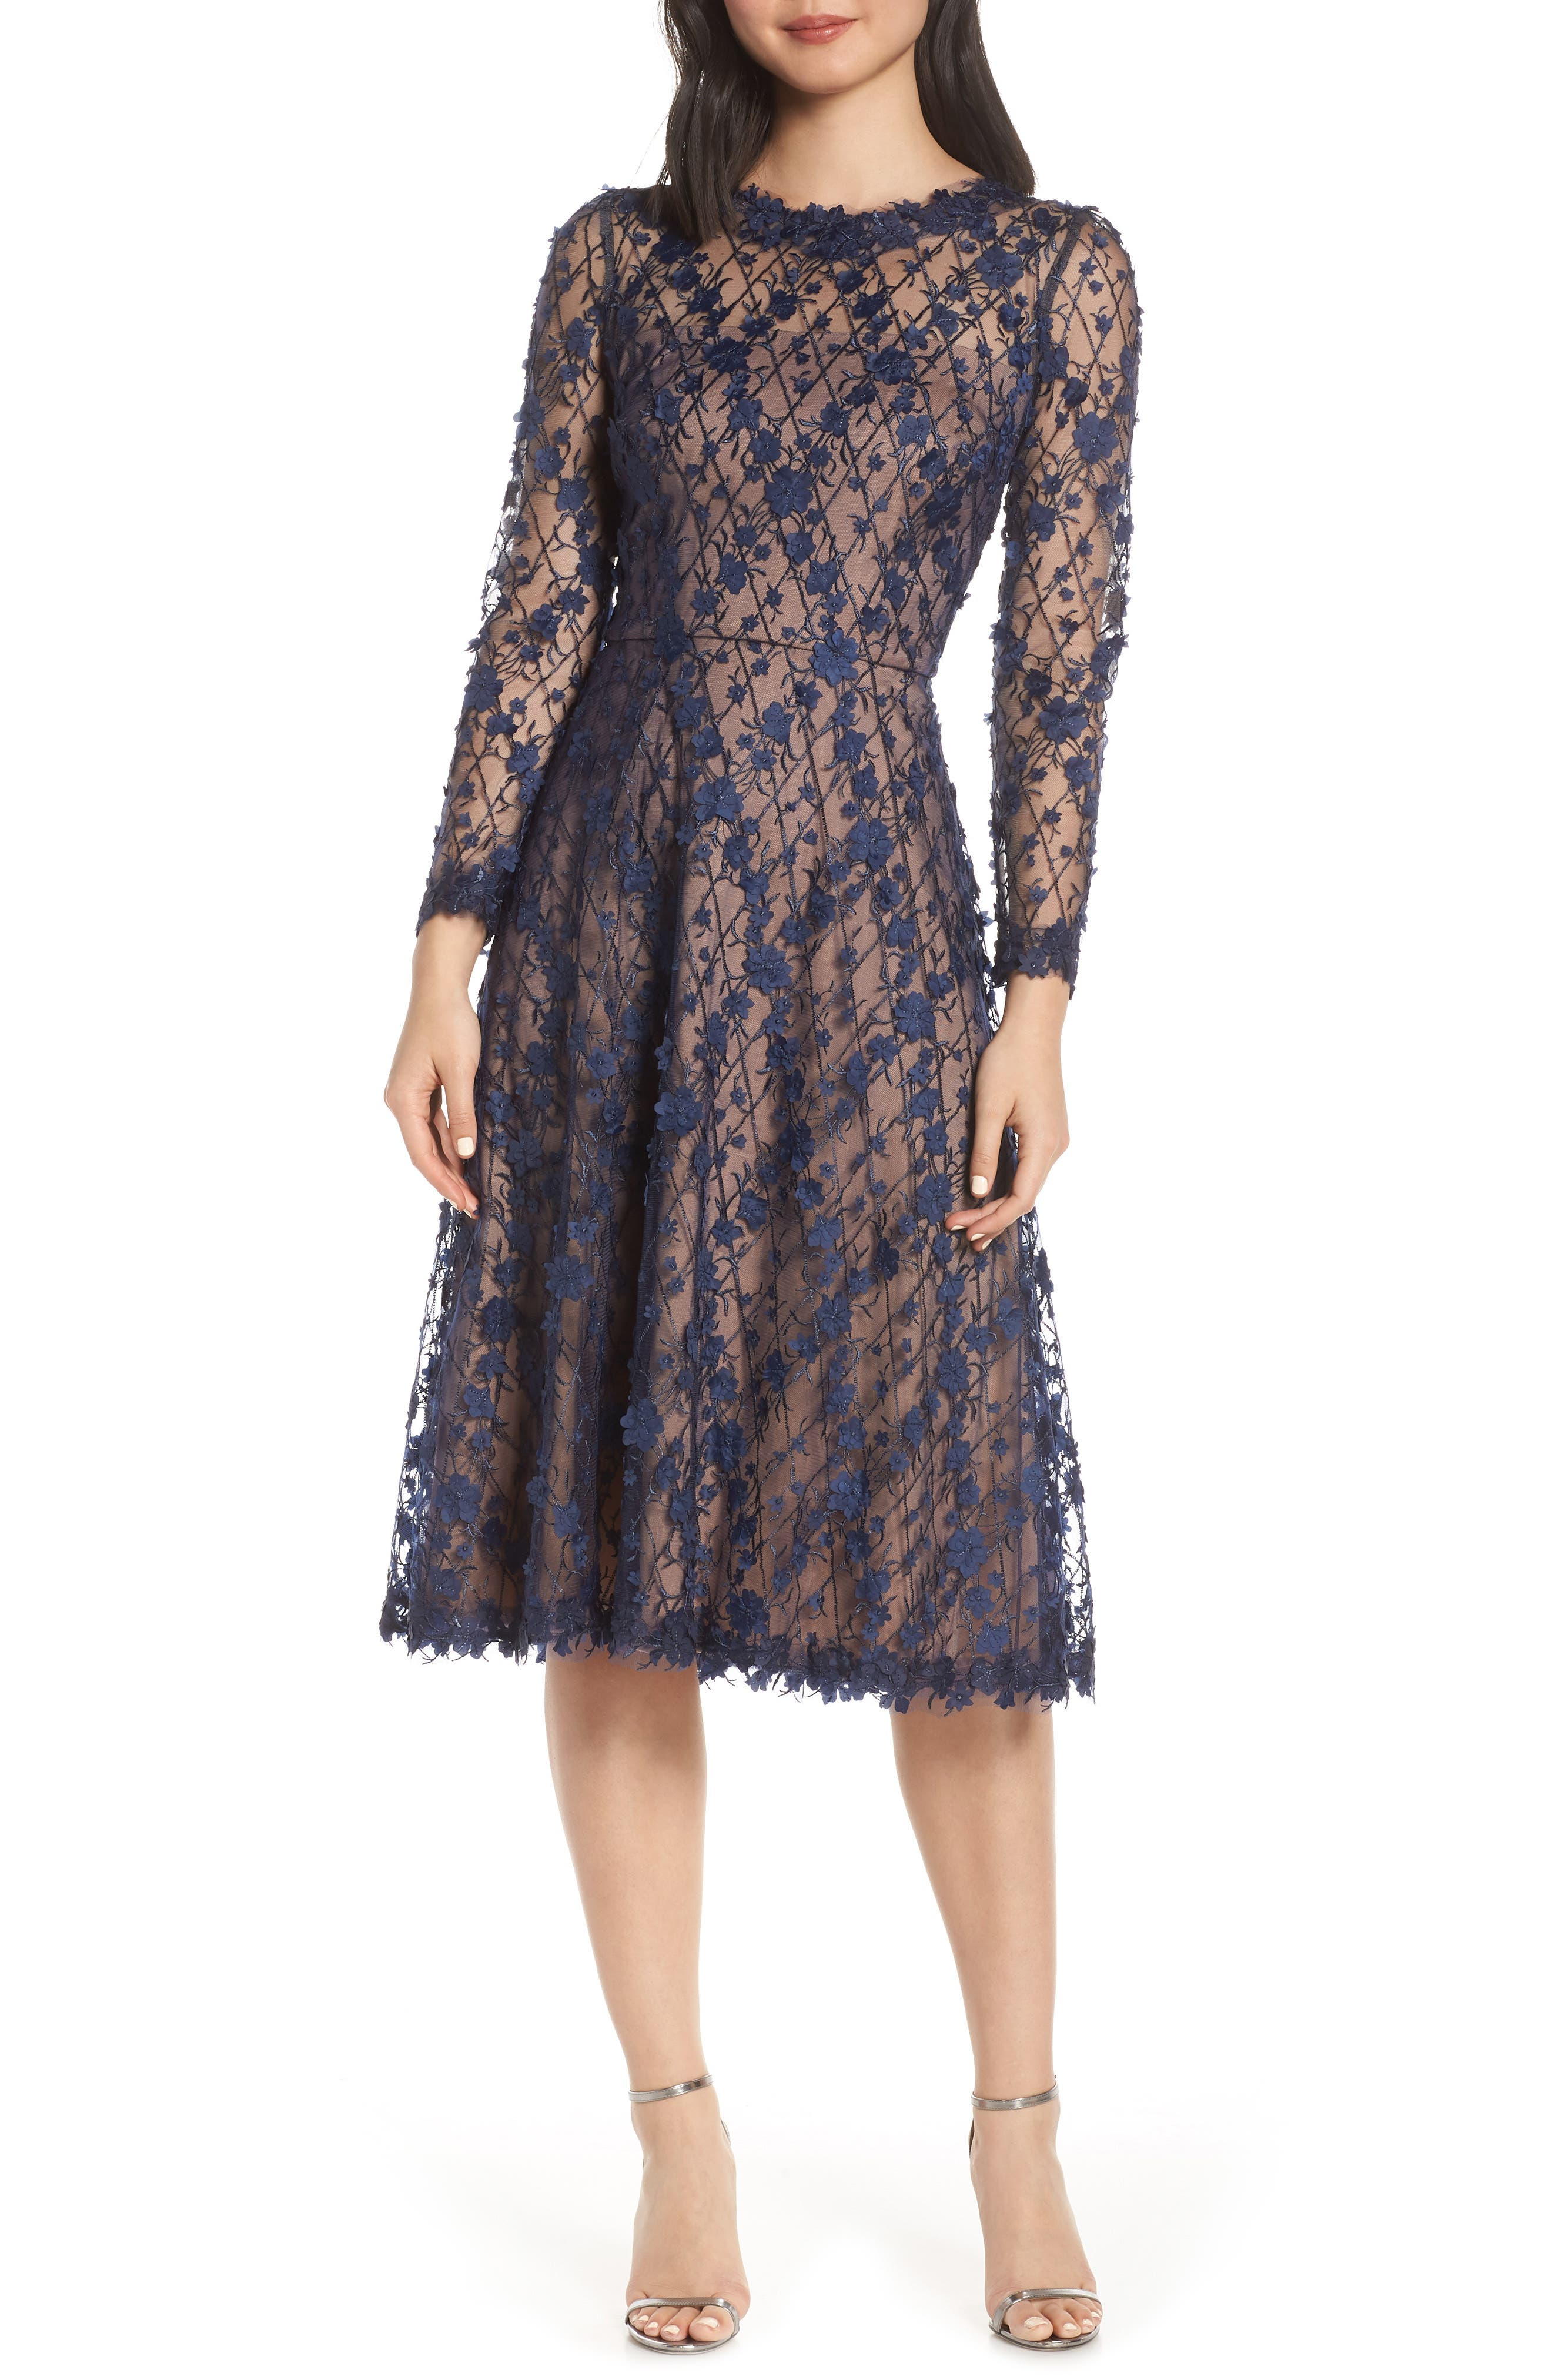 3D Flowers Lace Dress,                             Main thumbnail 1, color,                             MIDNIGHT/ NUDE